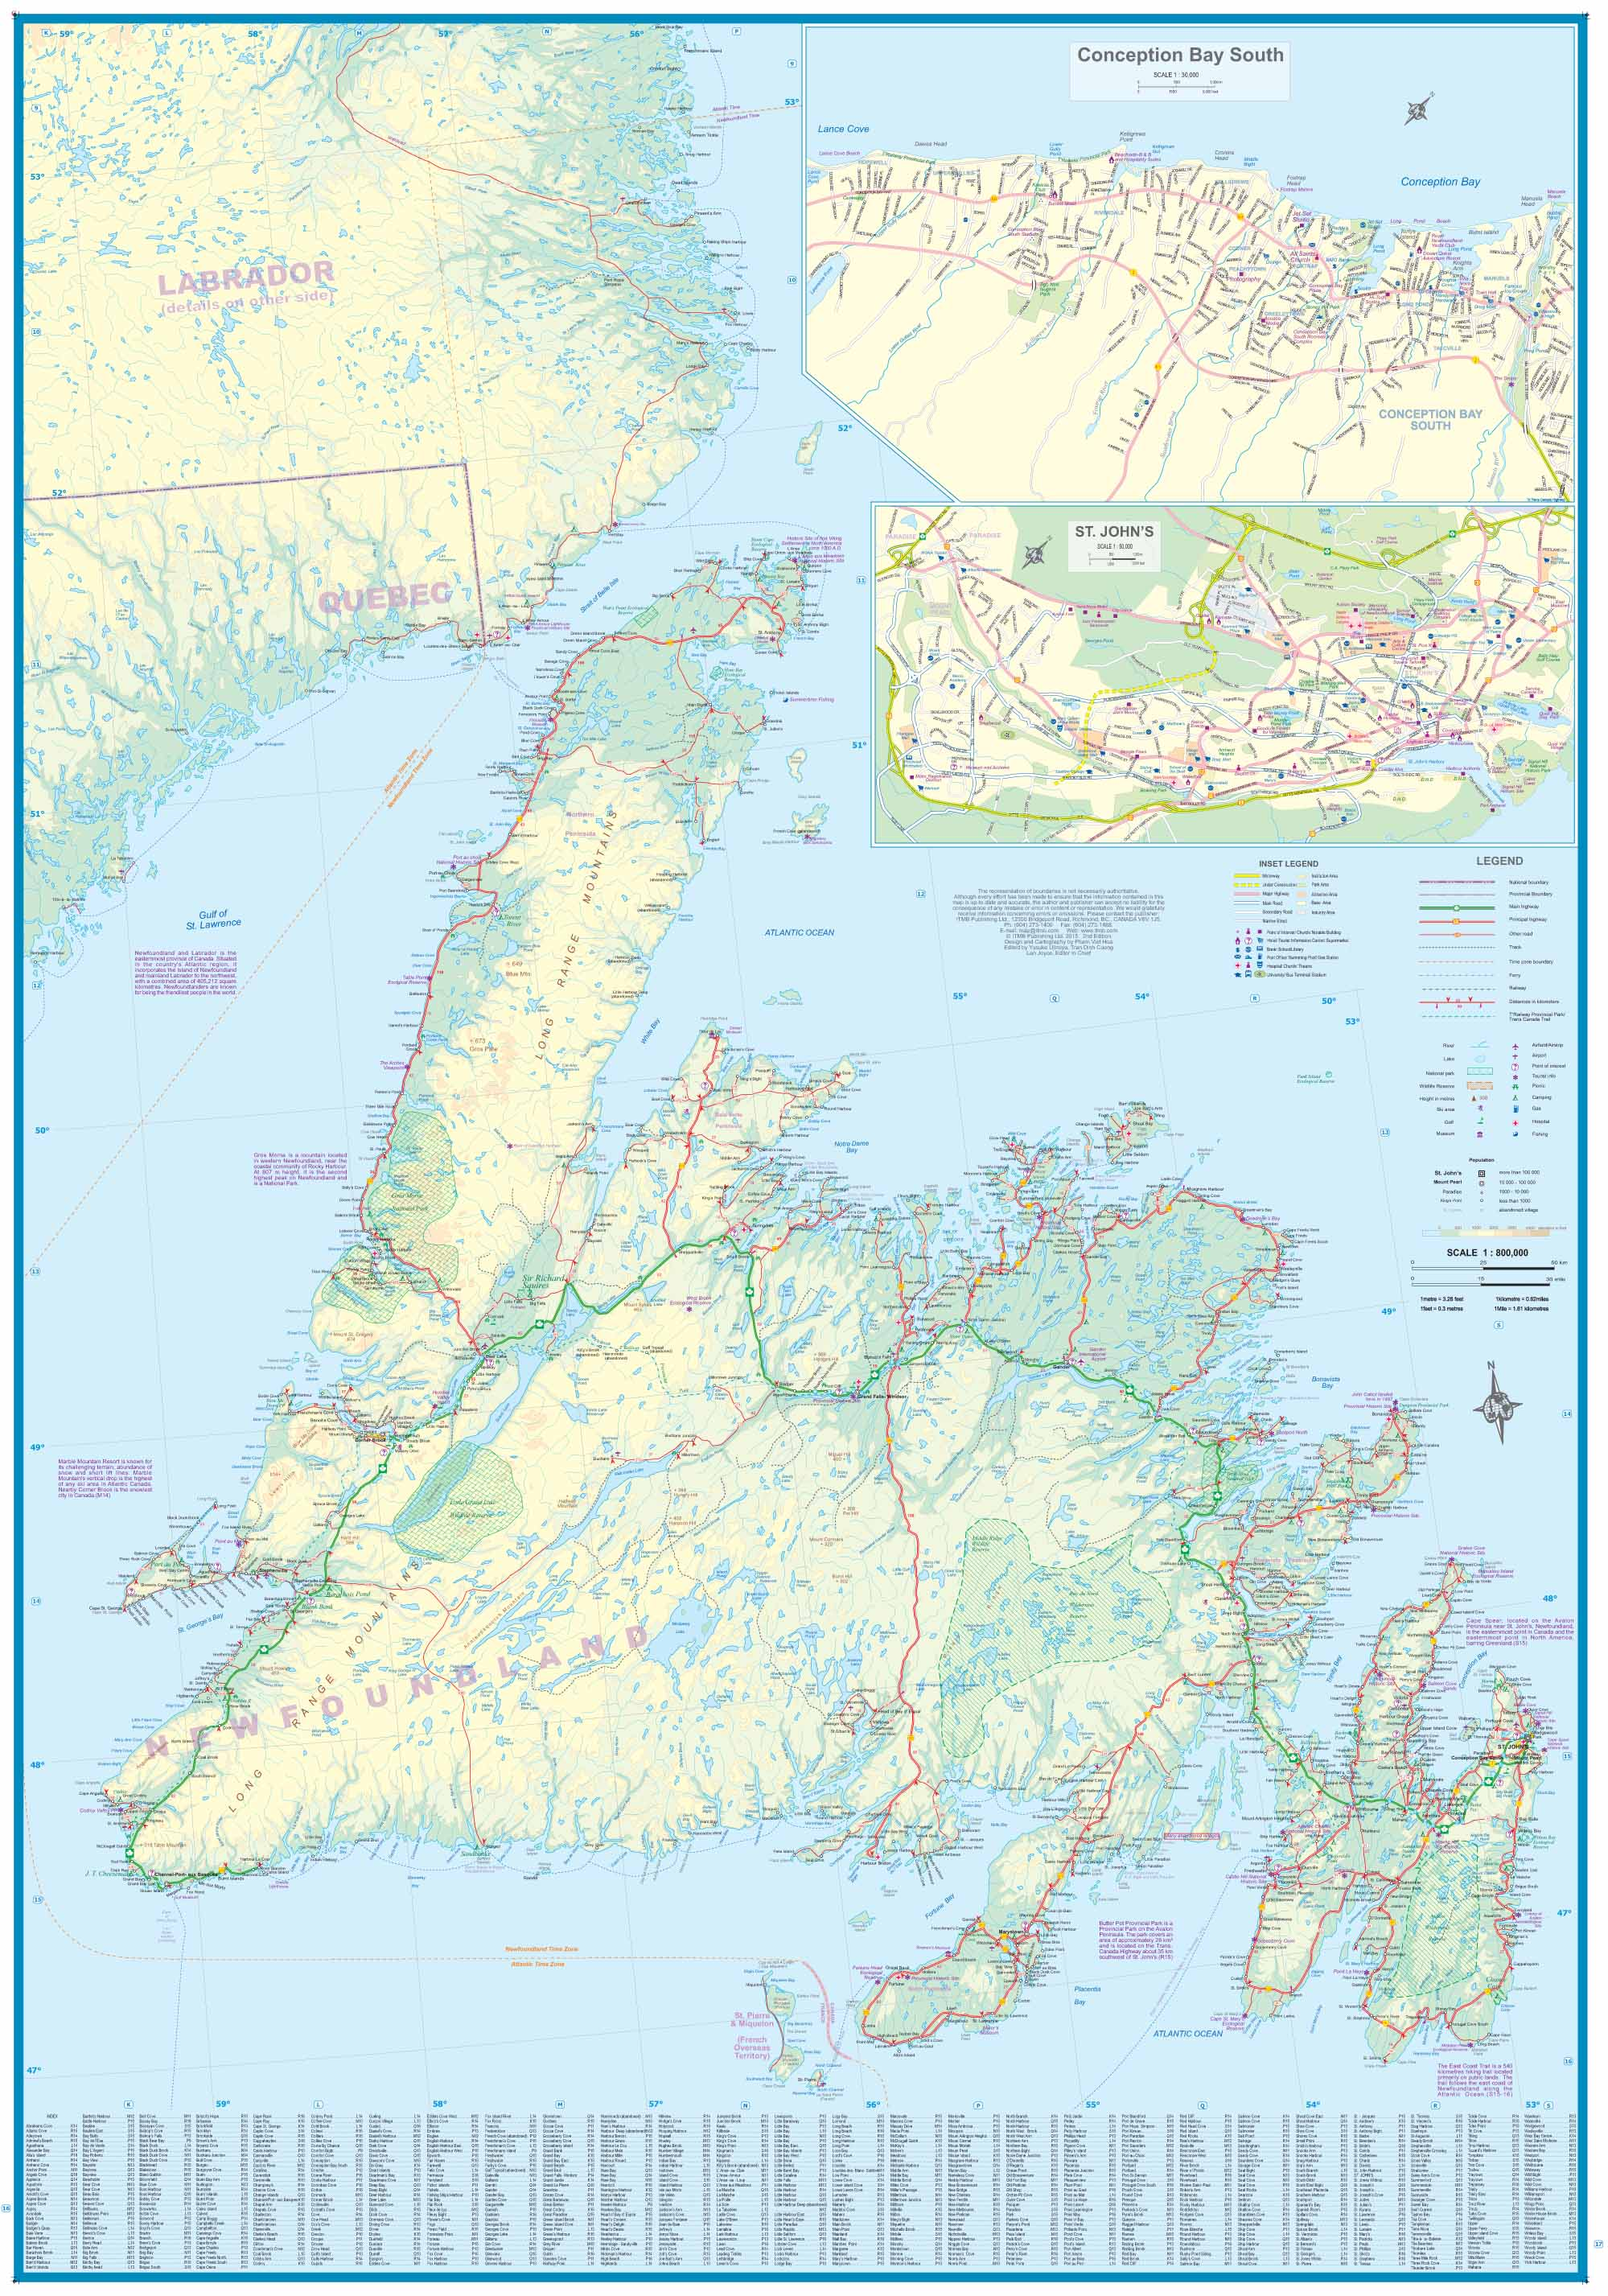 Maps For Travel City Maps Road Maps Guides Globes Topographic - Map of newfoundland